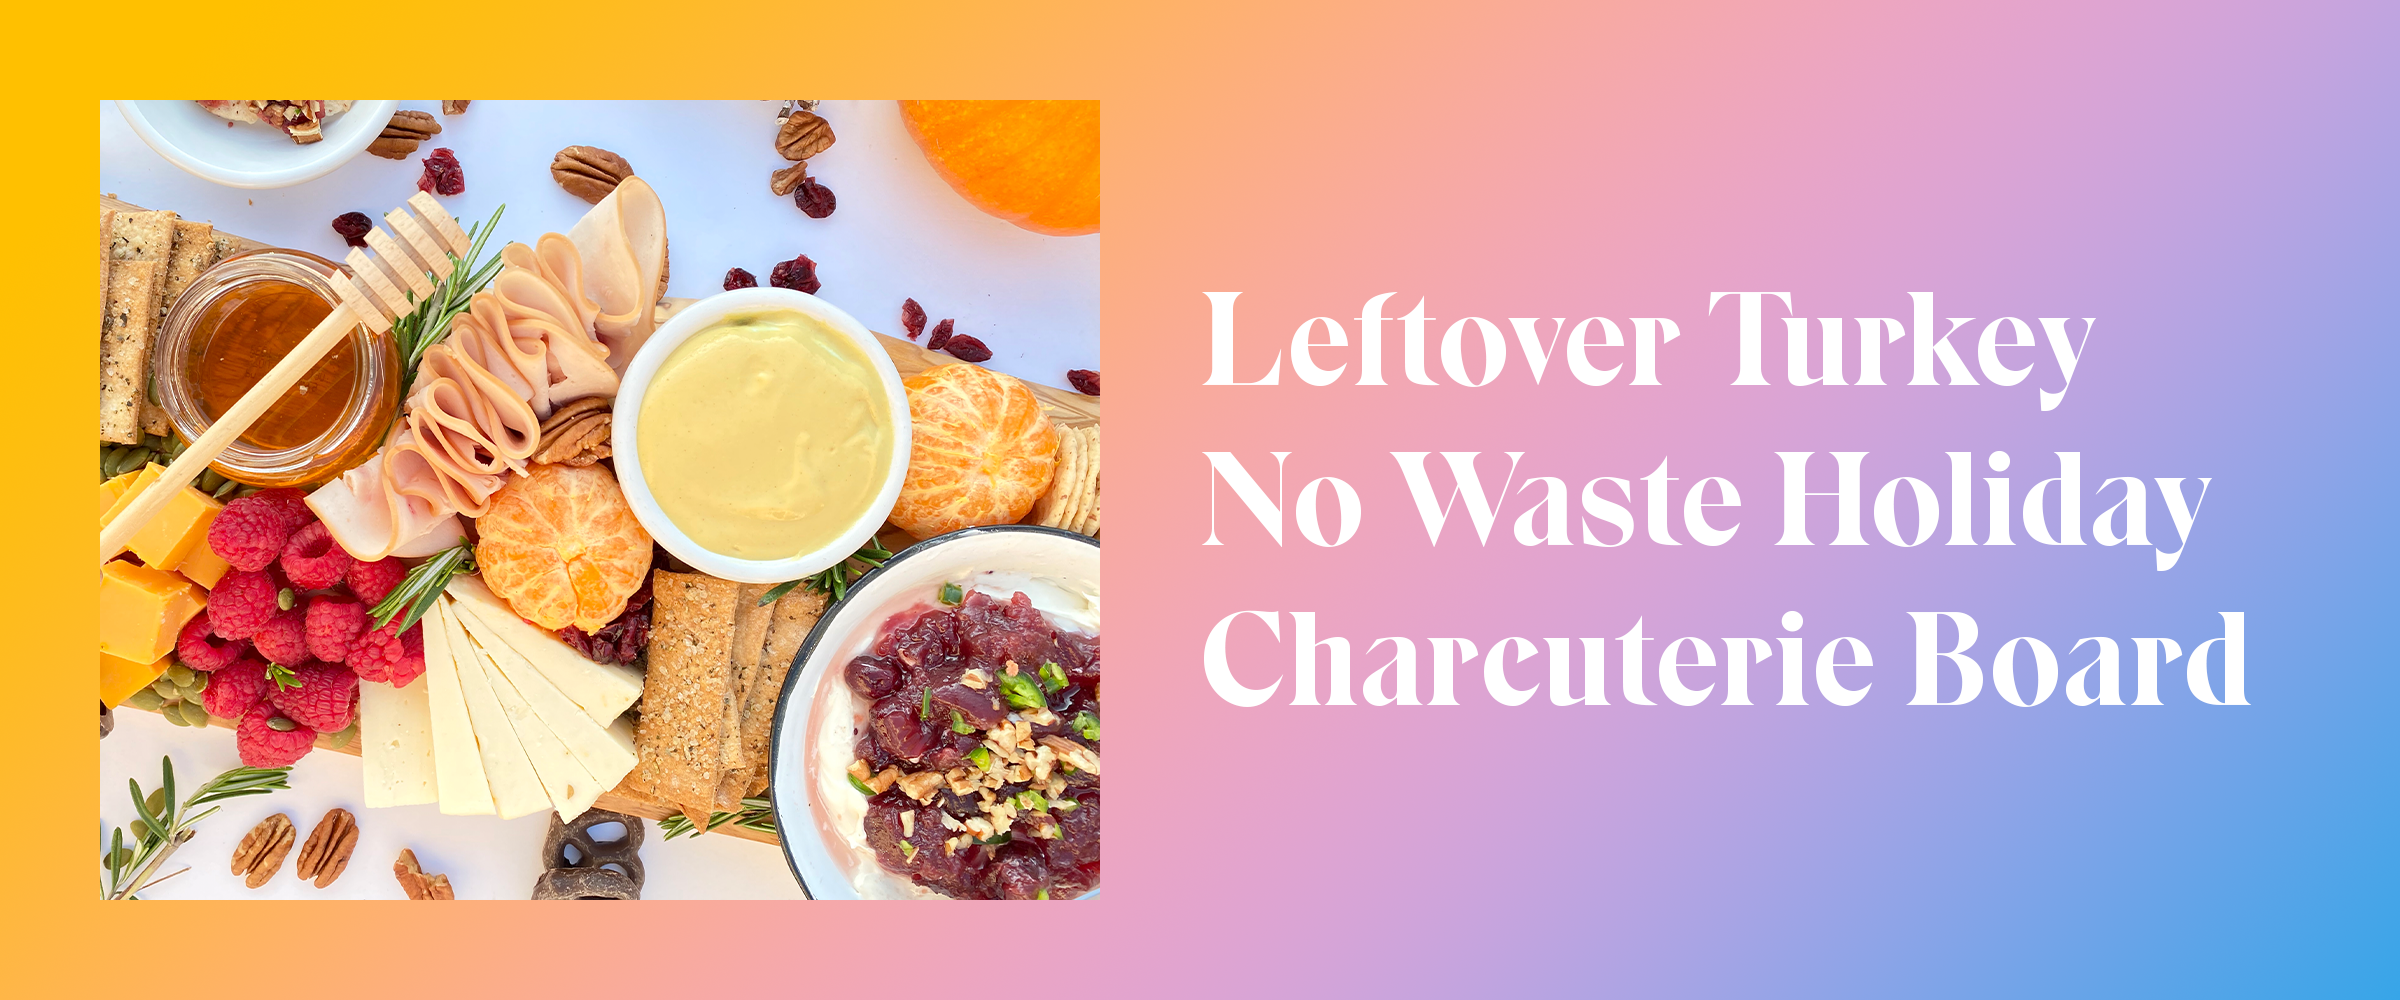 No Waste Holiday Charcuterie Board